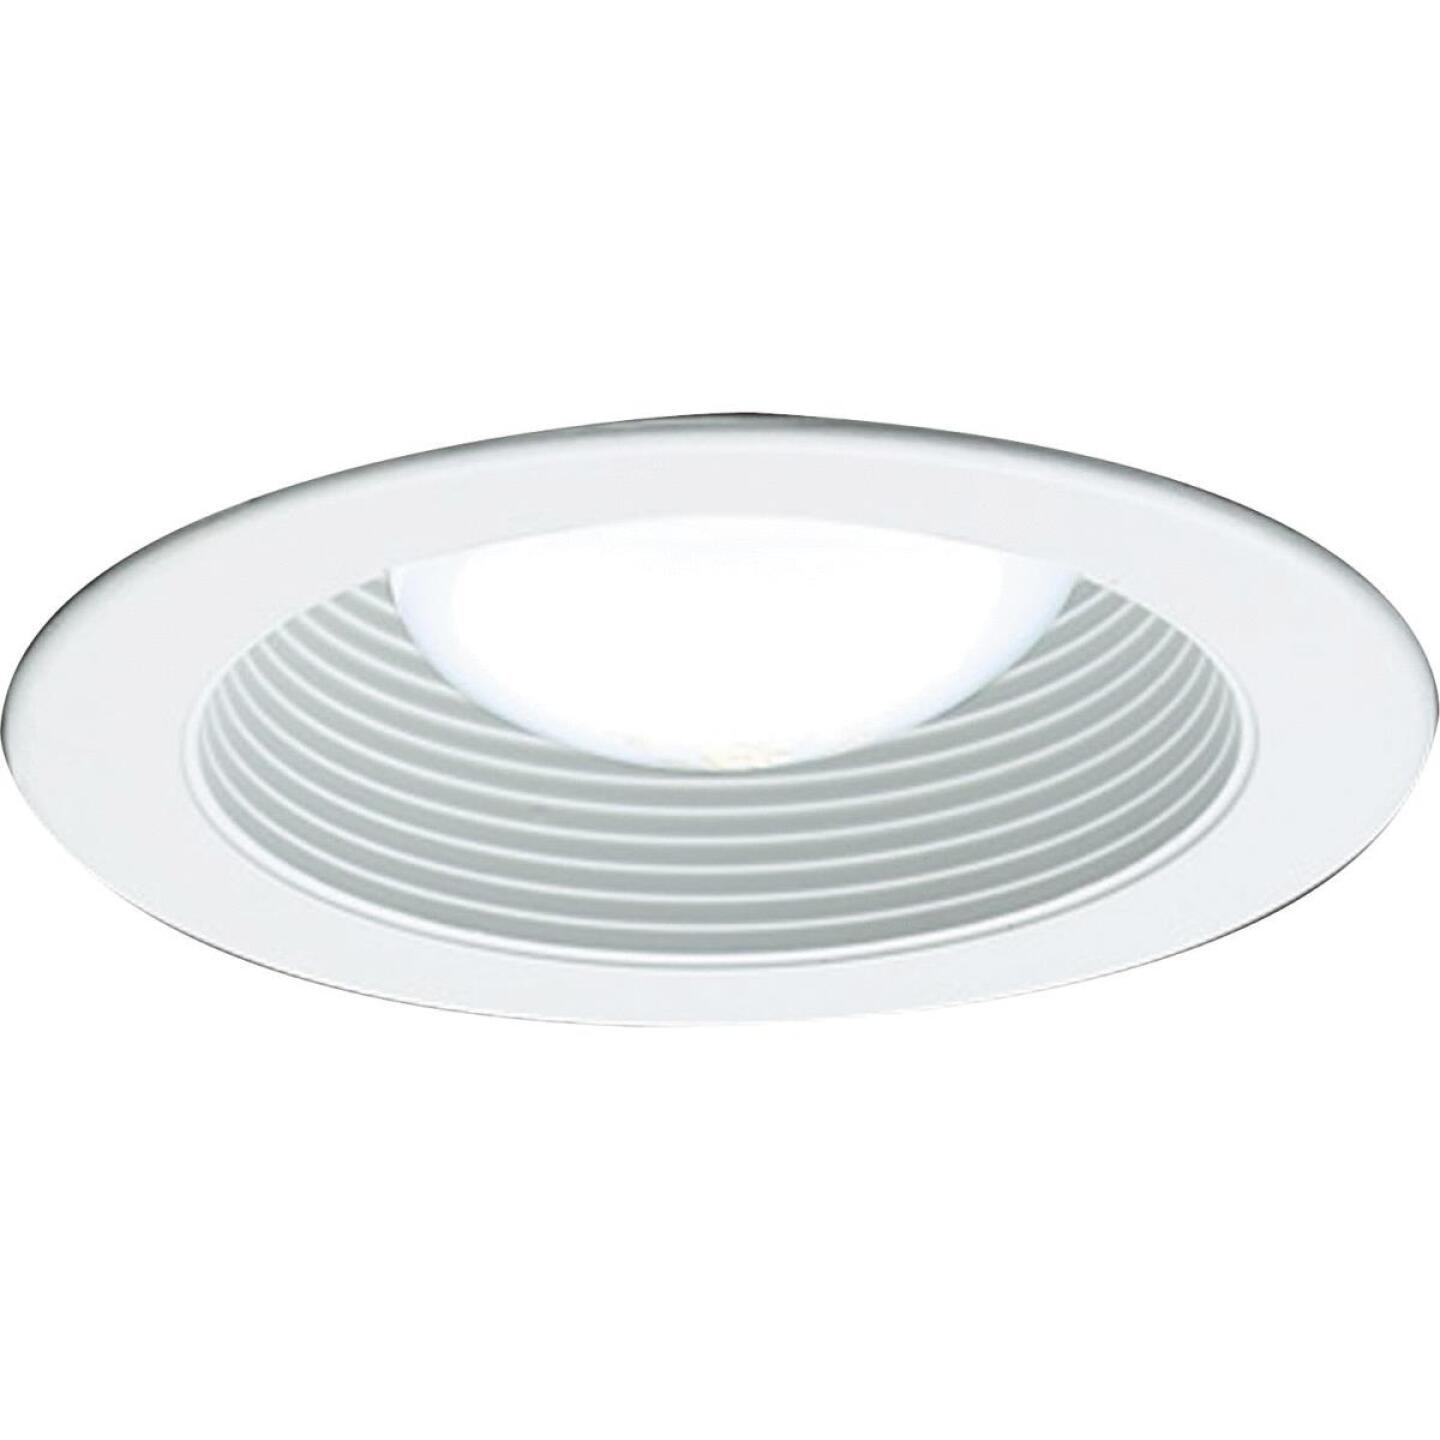 Thomas 4 In. White Trim w/White Baffle Recessed Fixture Trim Image 1